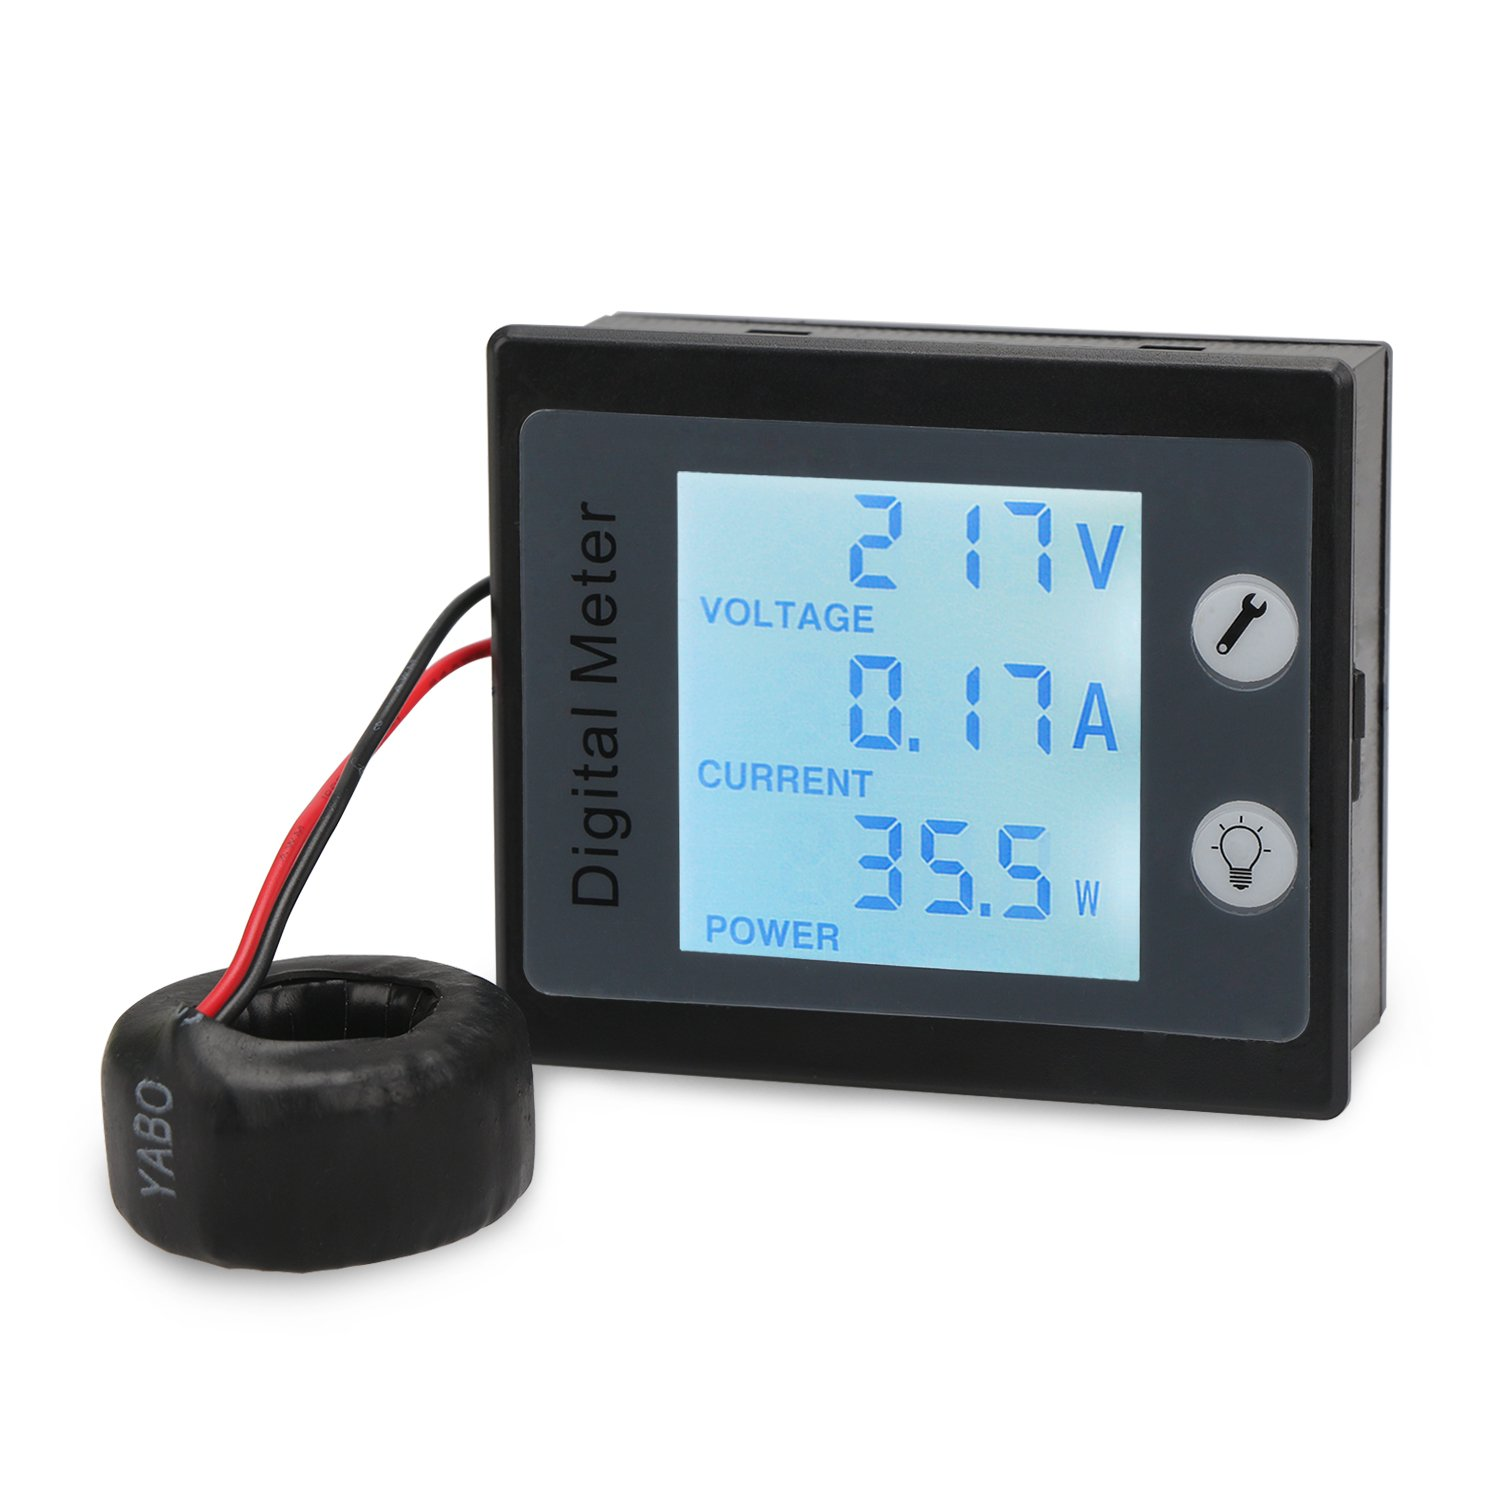 71ljuX31usL._SL1500_ drok 80 260v ac multifunciton digital meter with ct, 100a ammeter powermonitor 1000 wiring diagram at alyssarenee.co